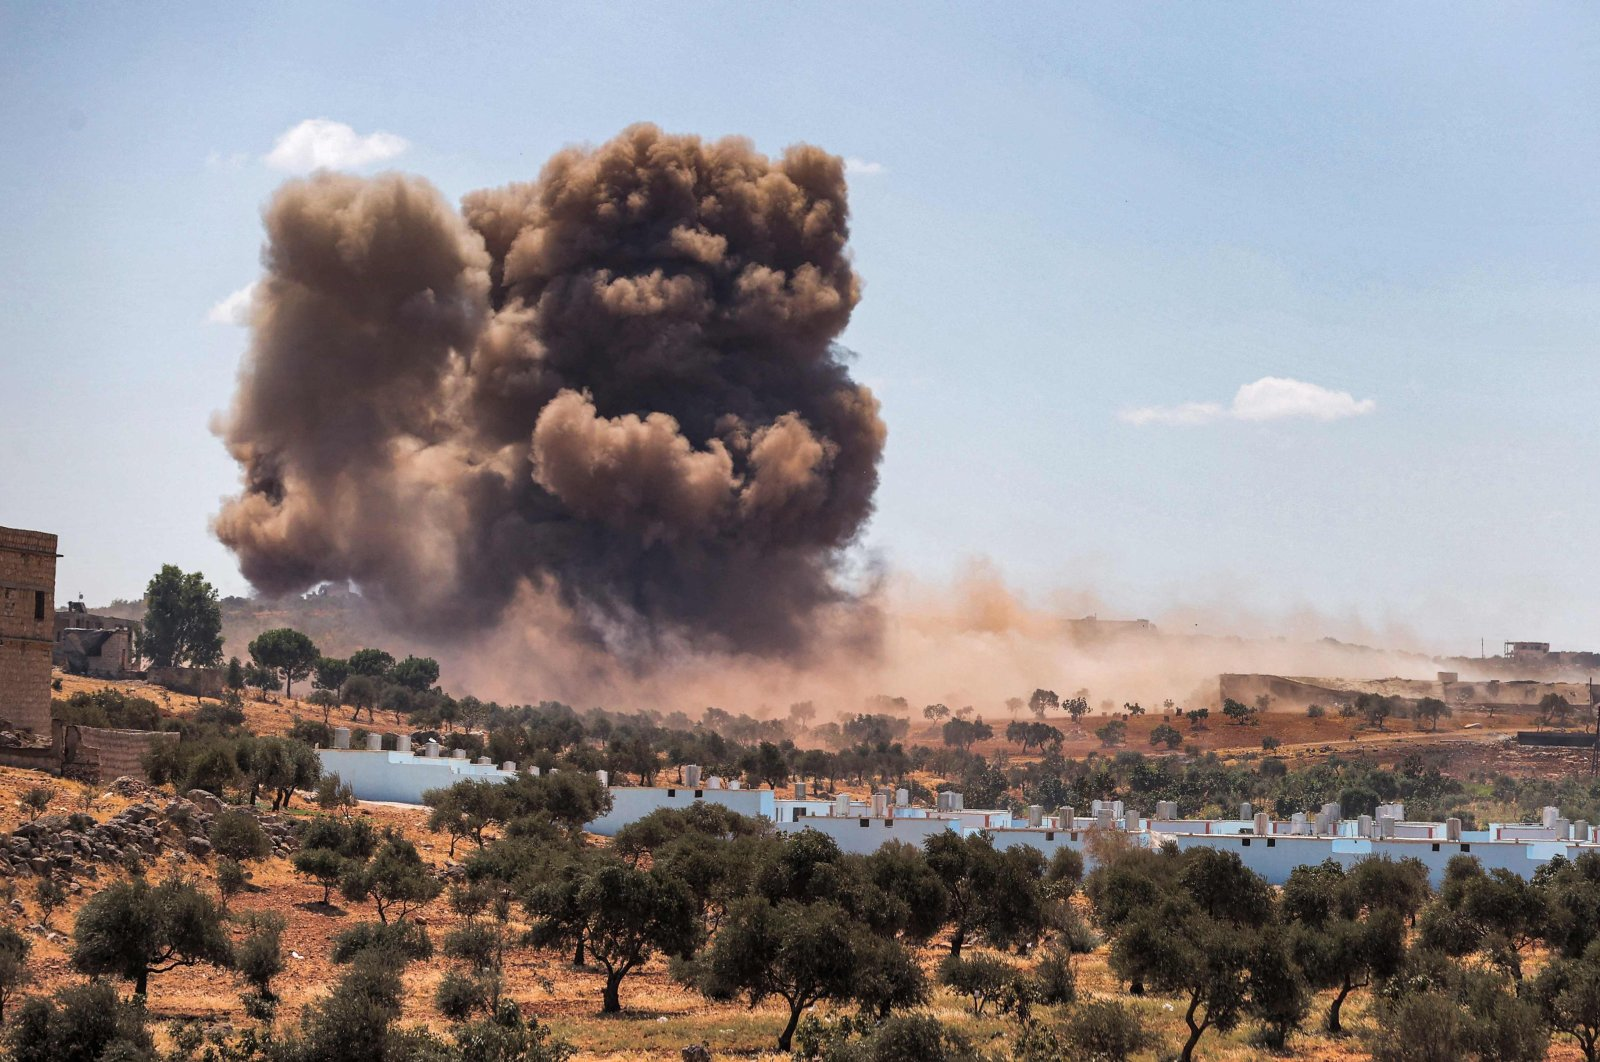 A smoke plume rising from aerial bombardment near a make-shift camp for displaced Syrians near the town of Kafraya in the north of Idlib province, northwestern Syria, Sept. 7, 2021. (AFP Photo)